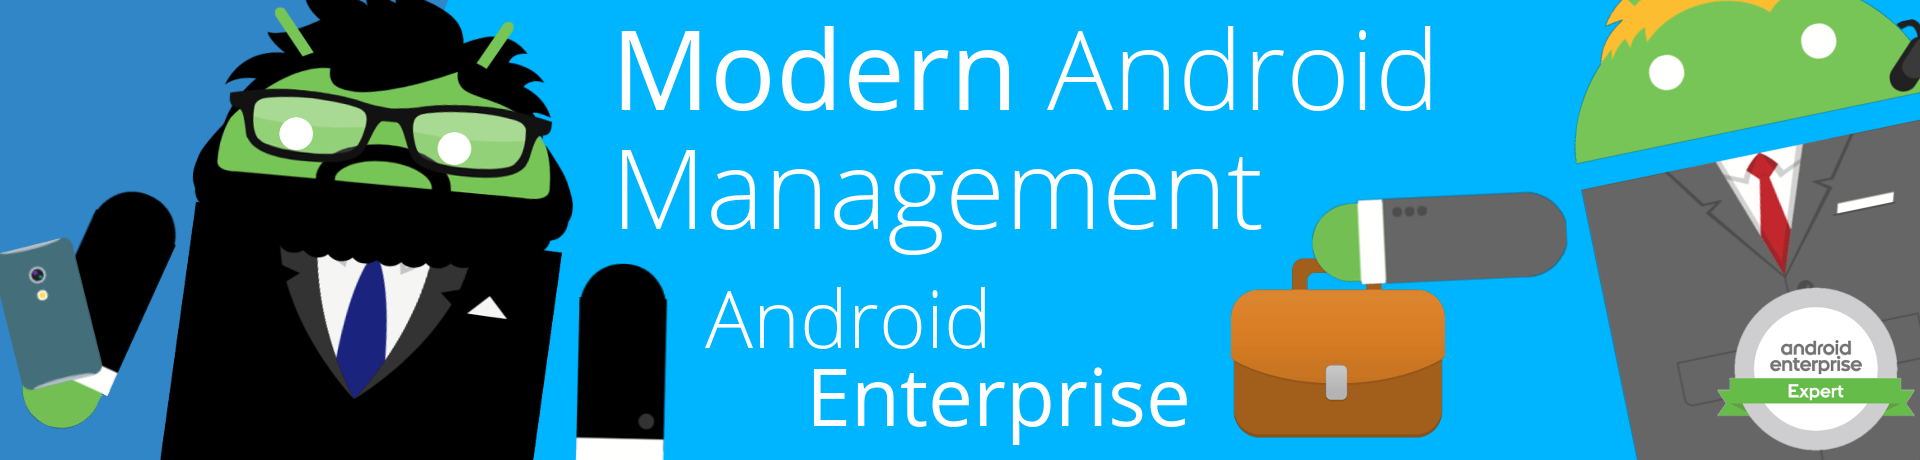 What is Android Enterprise? | Jason Bayton